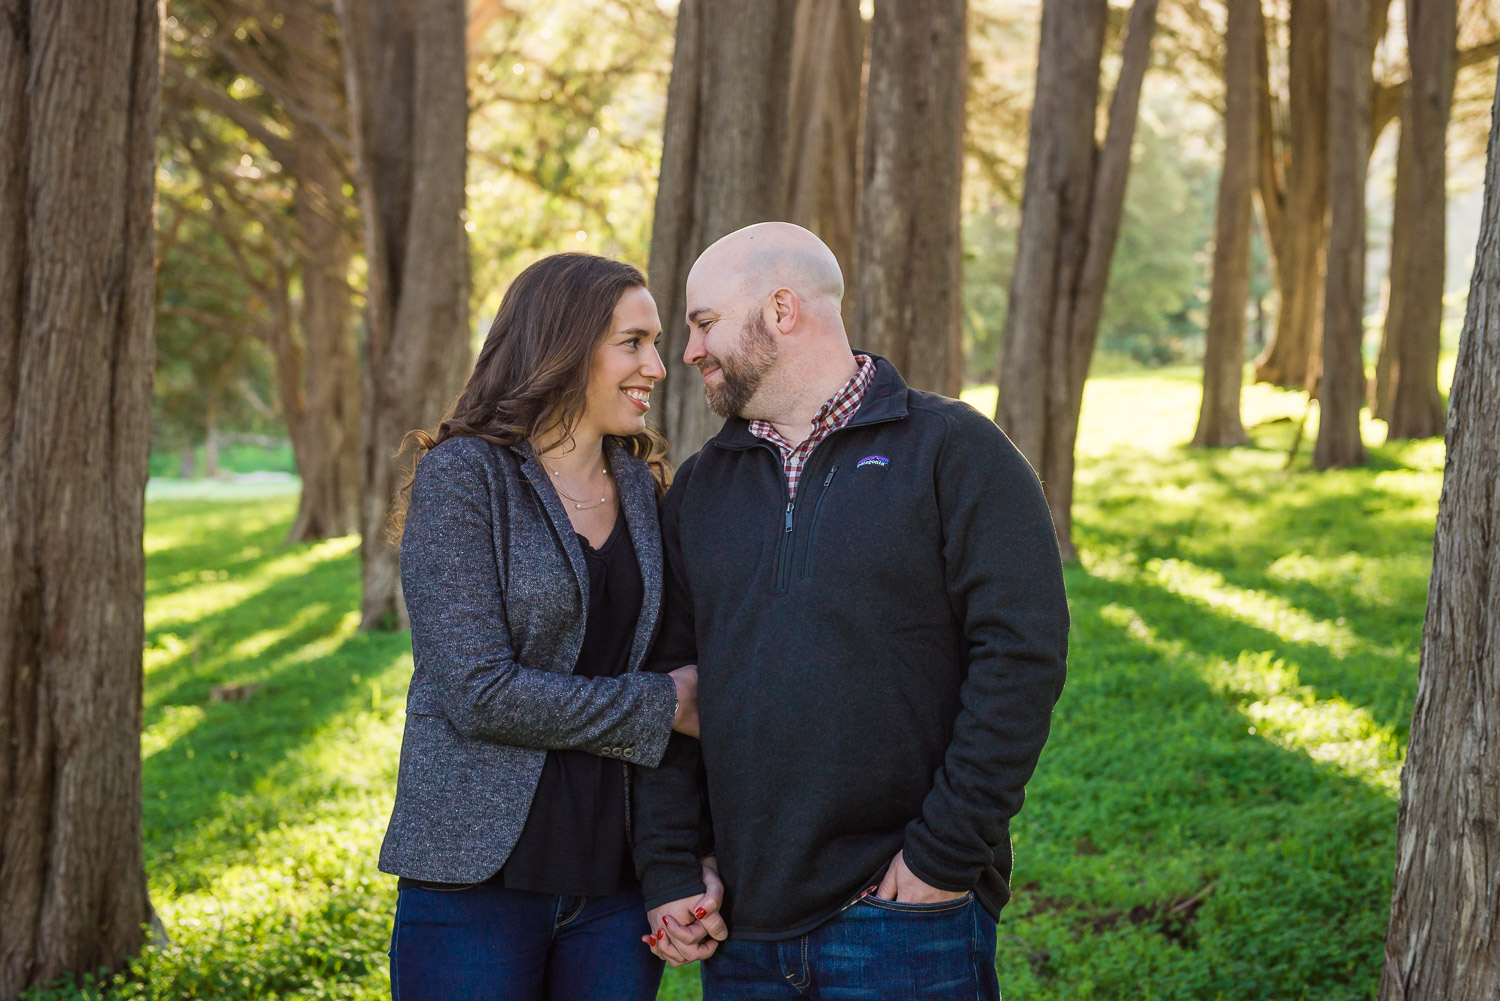 Sausalito engagement photography